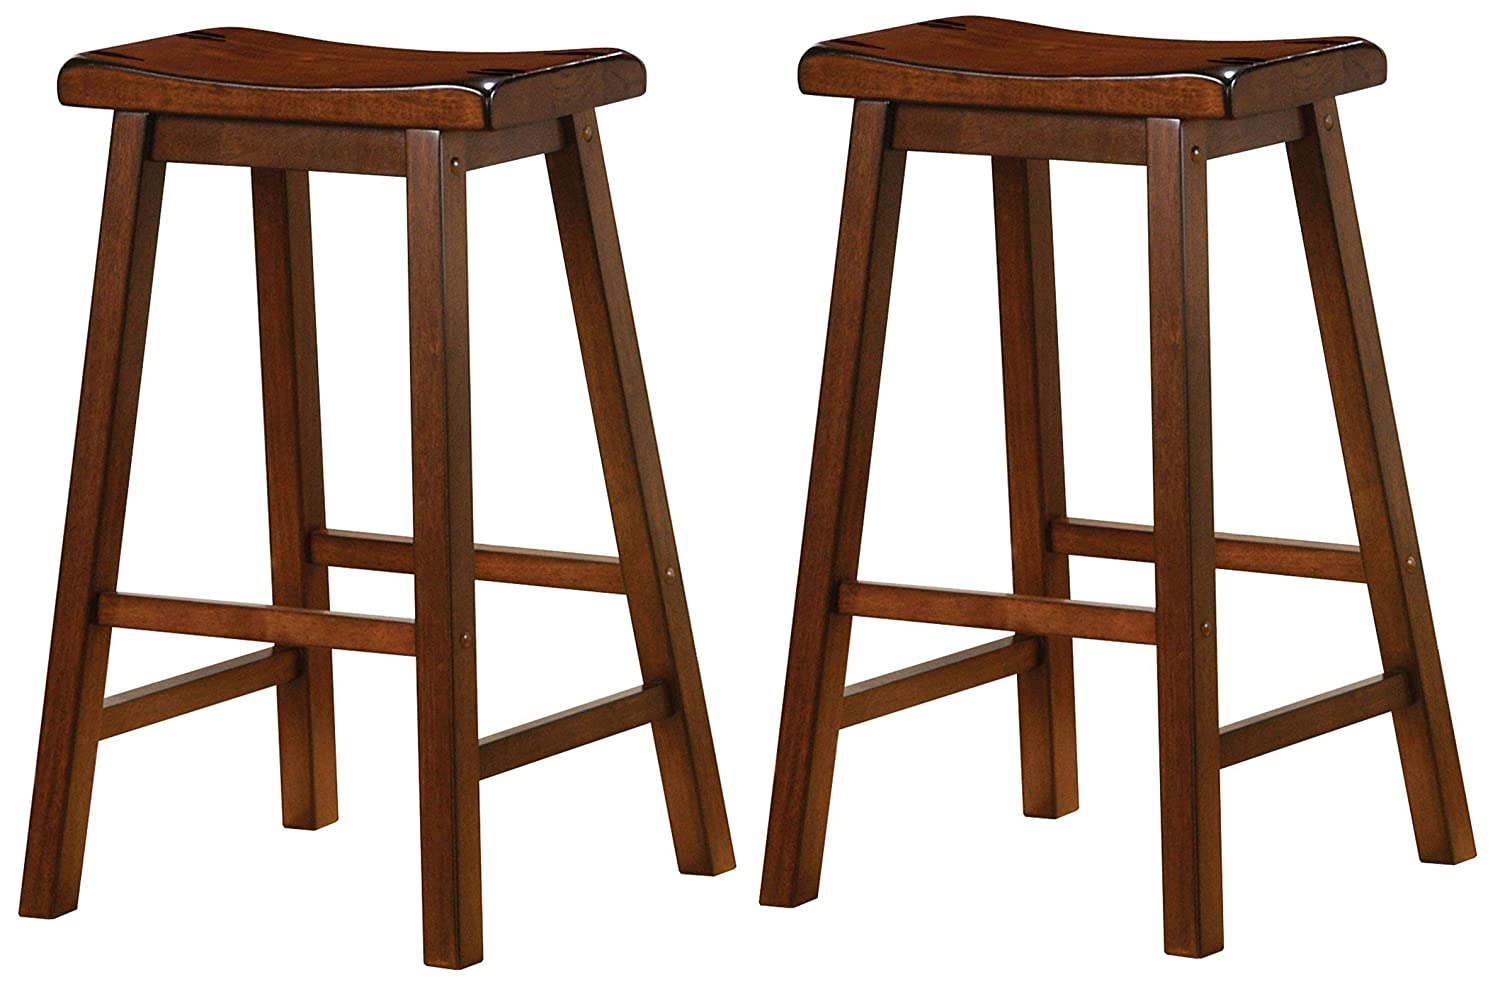 Marvelous Wooden 29 Bar Stools Chestnut Set Of 2 Caraccident5 Cool Chair Designs And Ideas Caraccident5Info